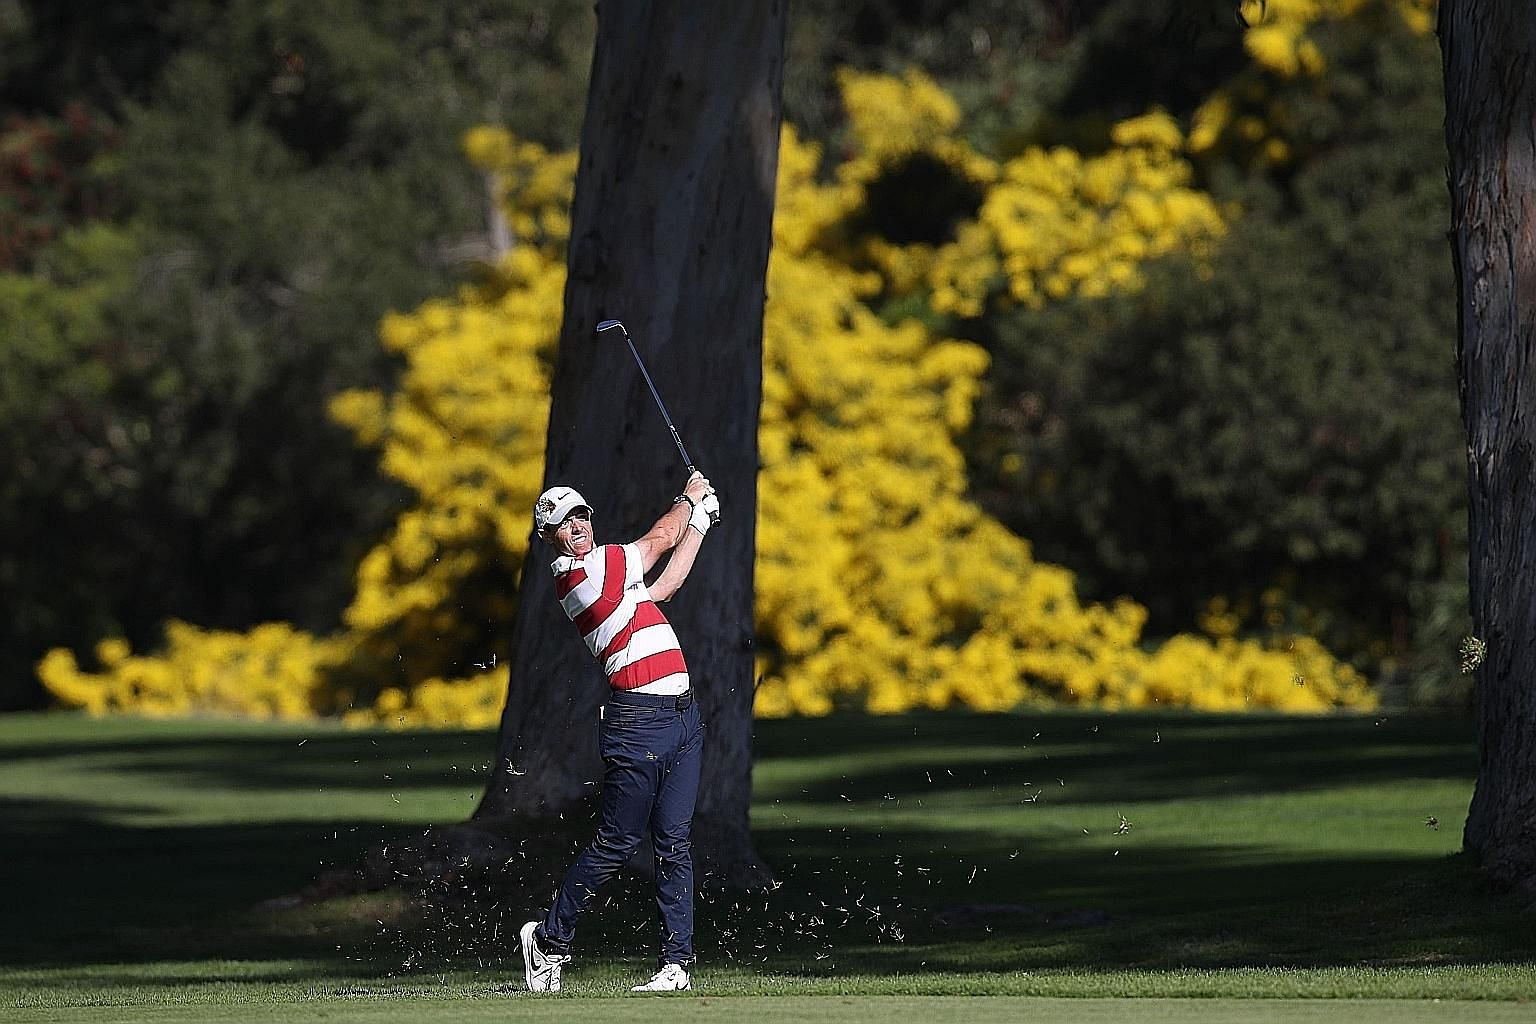 Rory McIlroy taking a shot from the 13th fairway during the second round of the Genesis Invitational at Riviera Country Club in Pacific Palisades, California. The Ulsterman is tied for second after 36 holes. PHOTO: AGENCE FRANCE-PRESSE